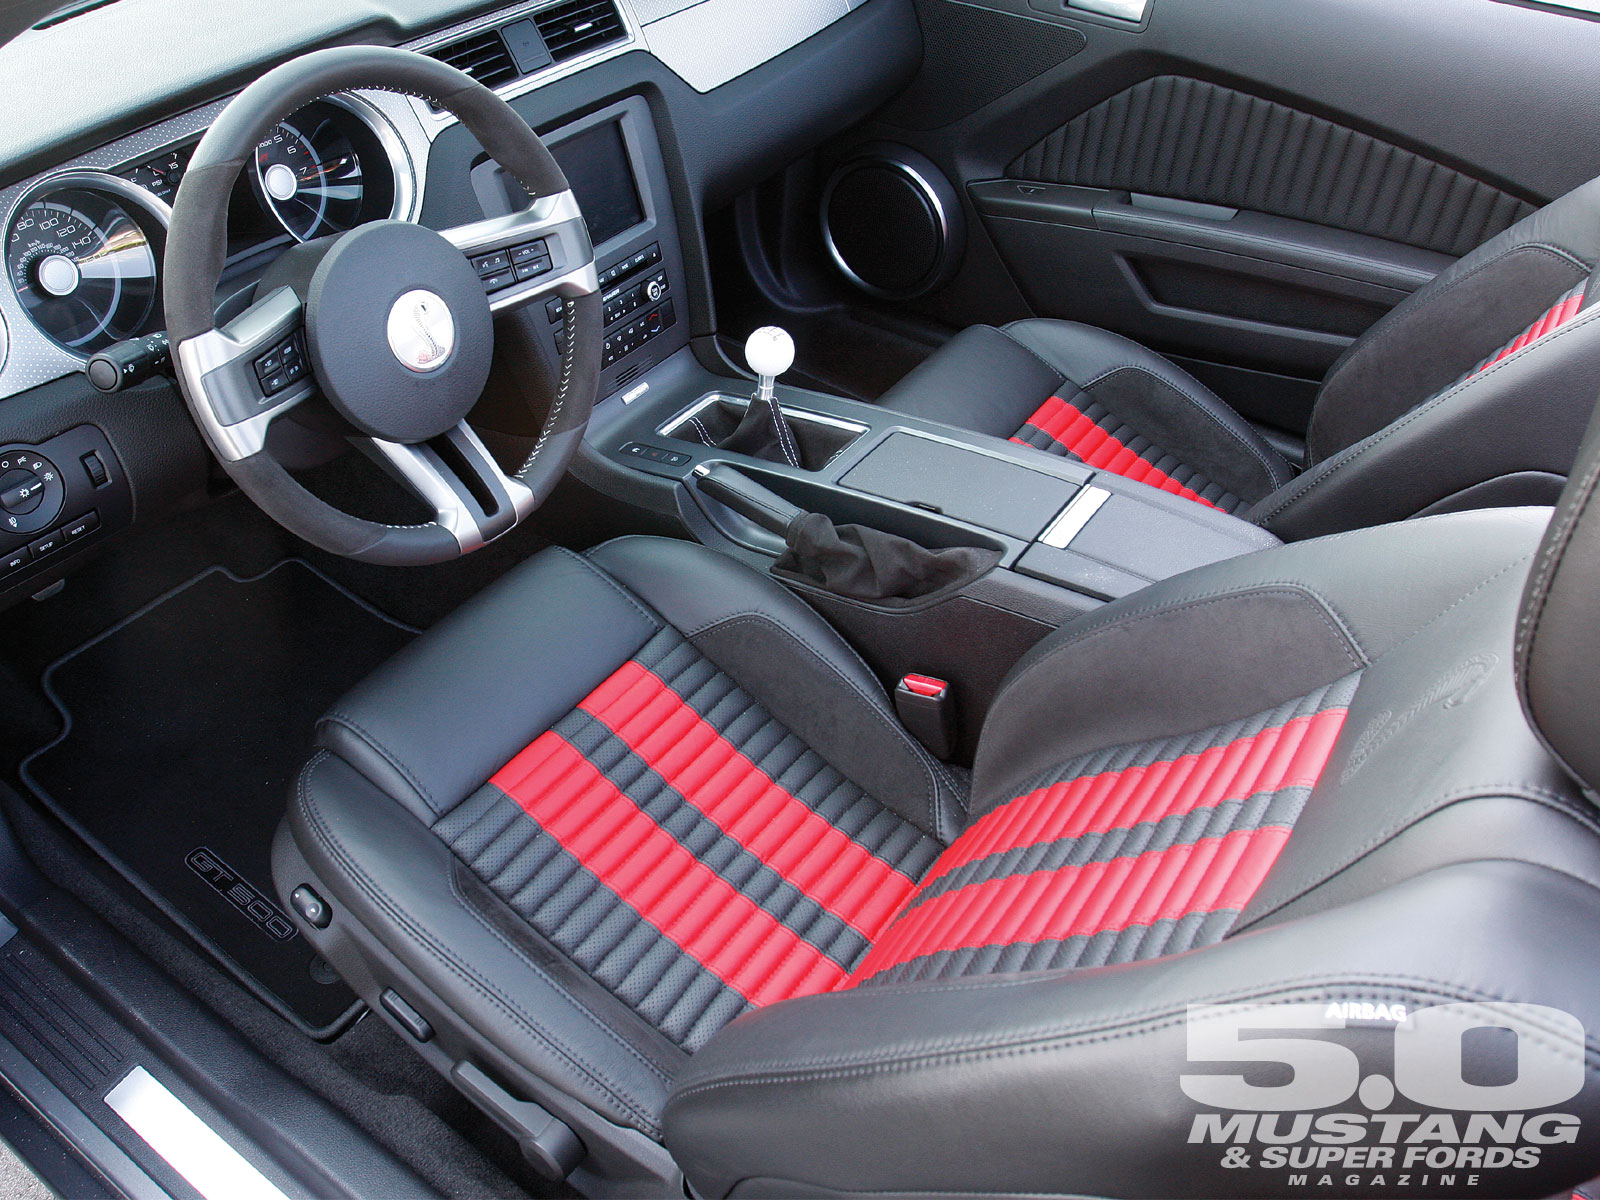 2011 Ford Mustang Gt Interior